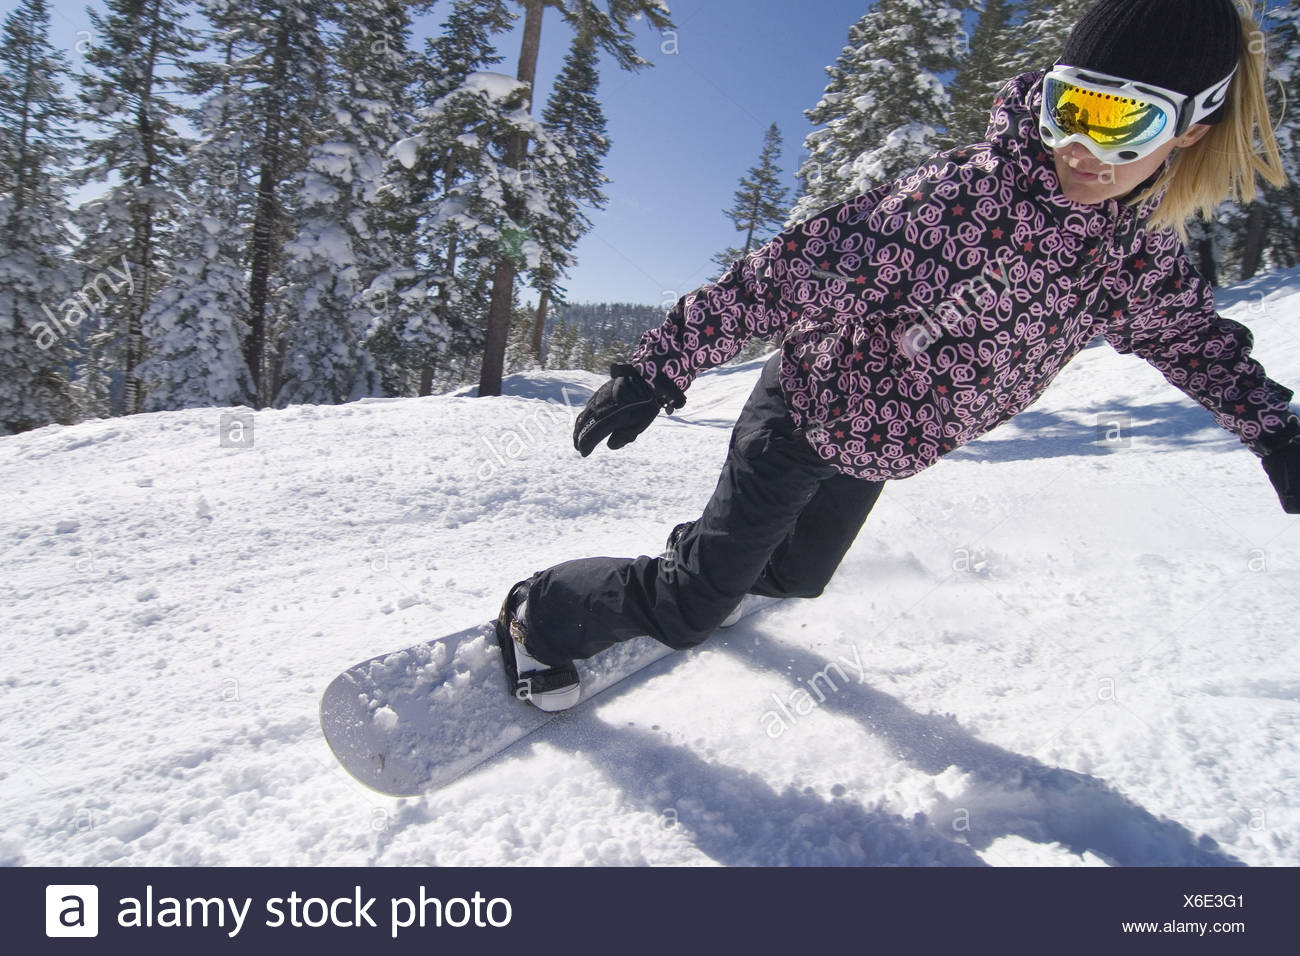 A woman snowboarding on a groomed run at Northstar ski area near Lake Tahoe in California Stock Photo